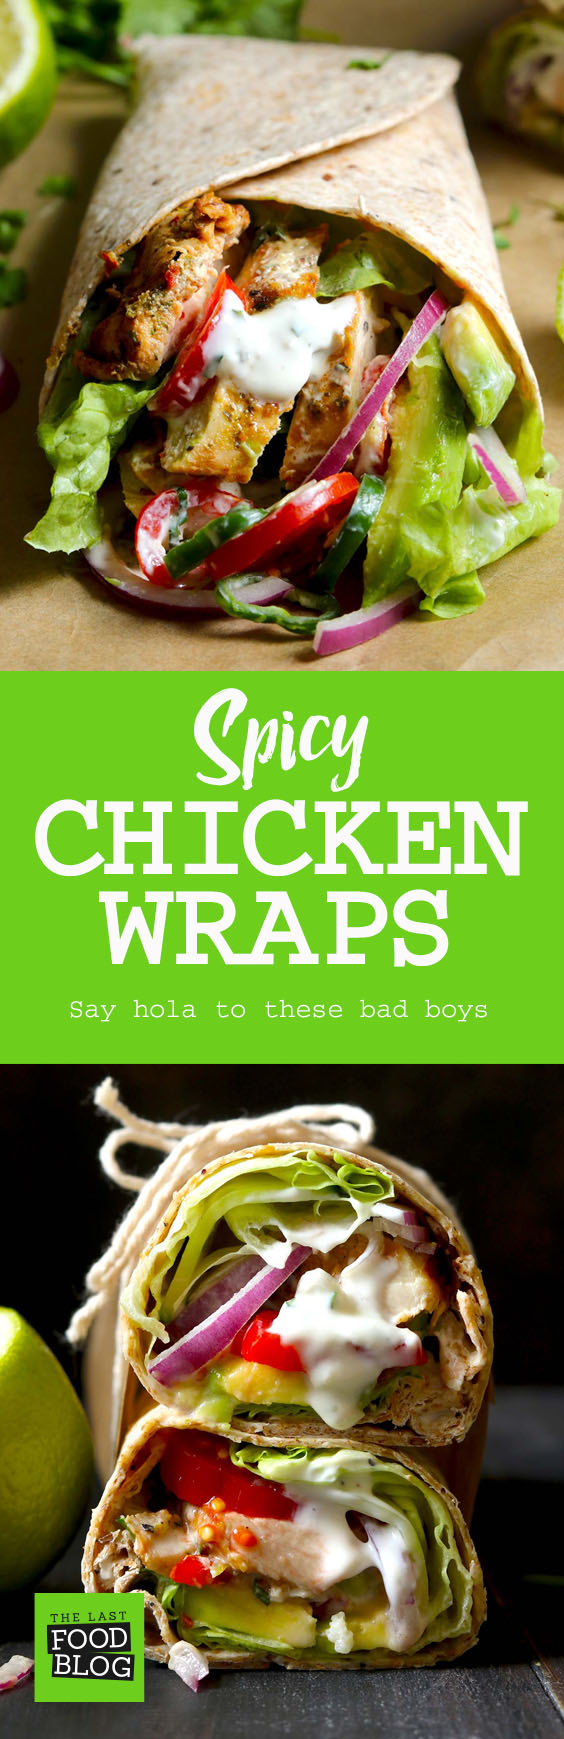 Spicy Chicken Wraps - thelastfoodblog.com